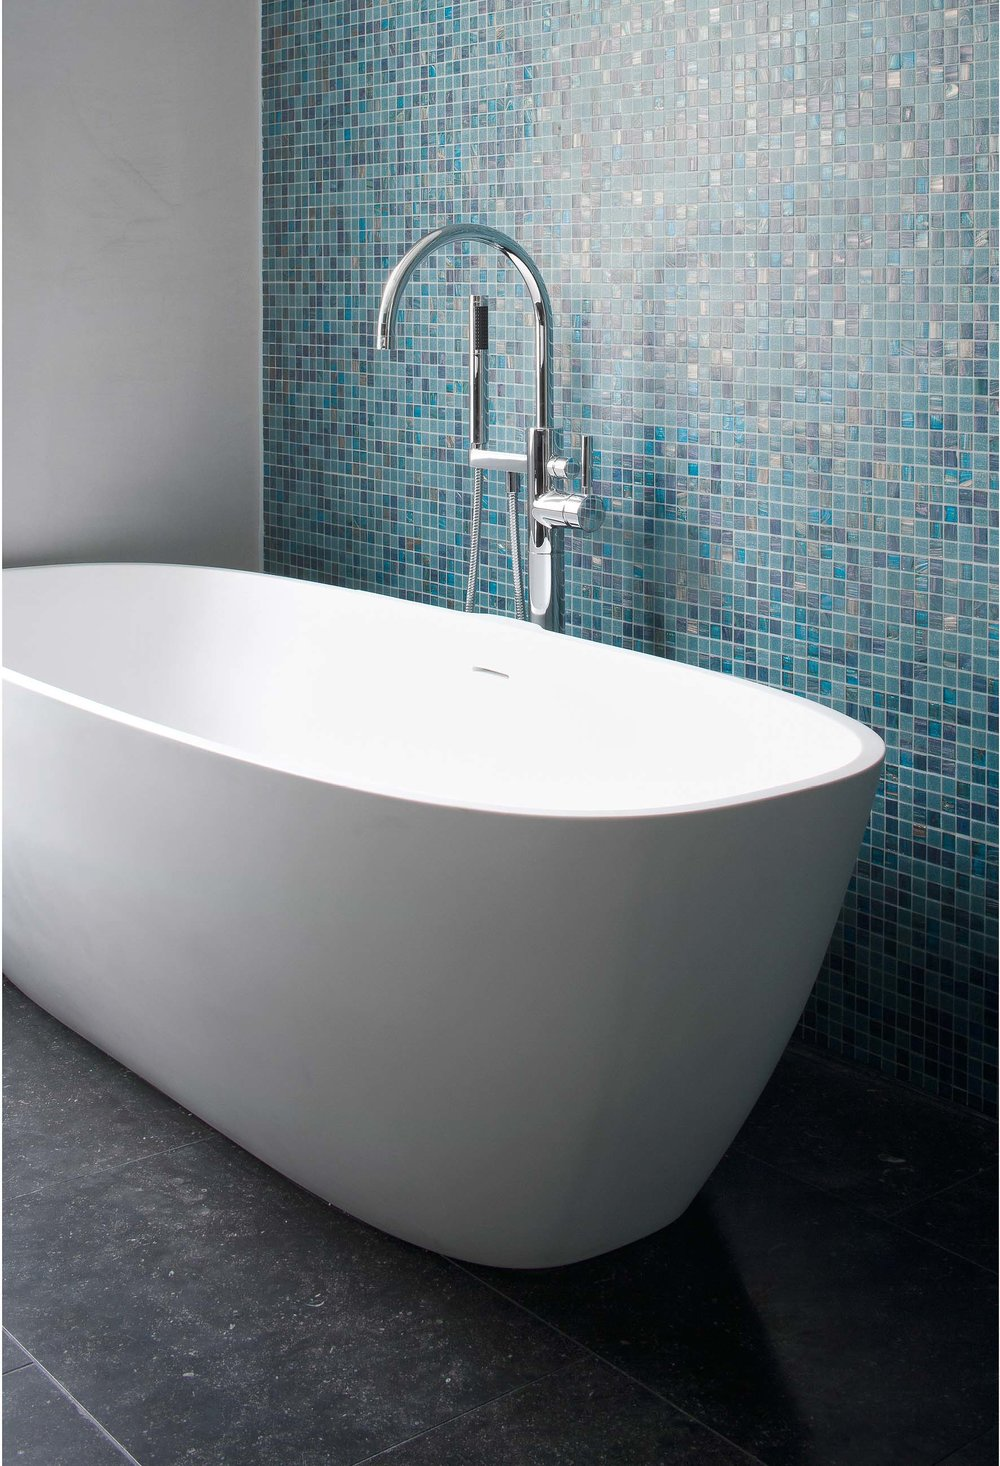 The bath in the master bathroom. Set on luxuary tiles with a turquoise tiled back walll.